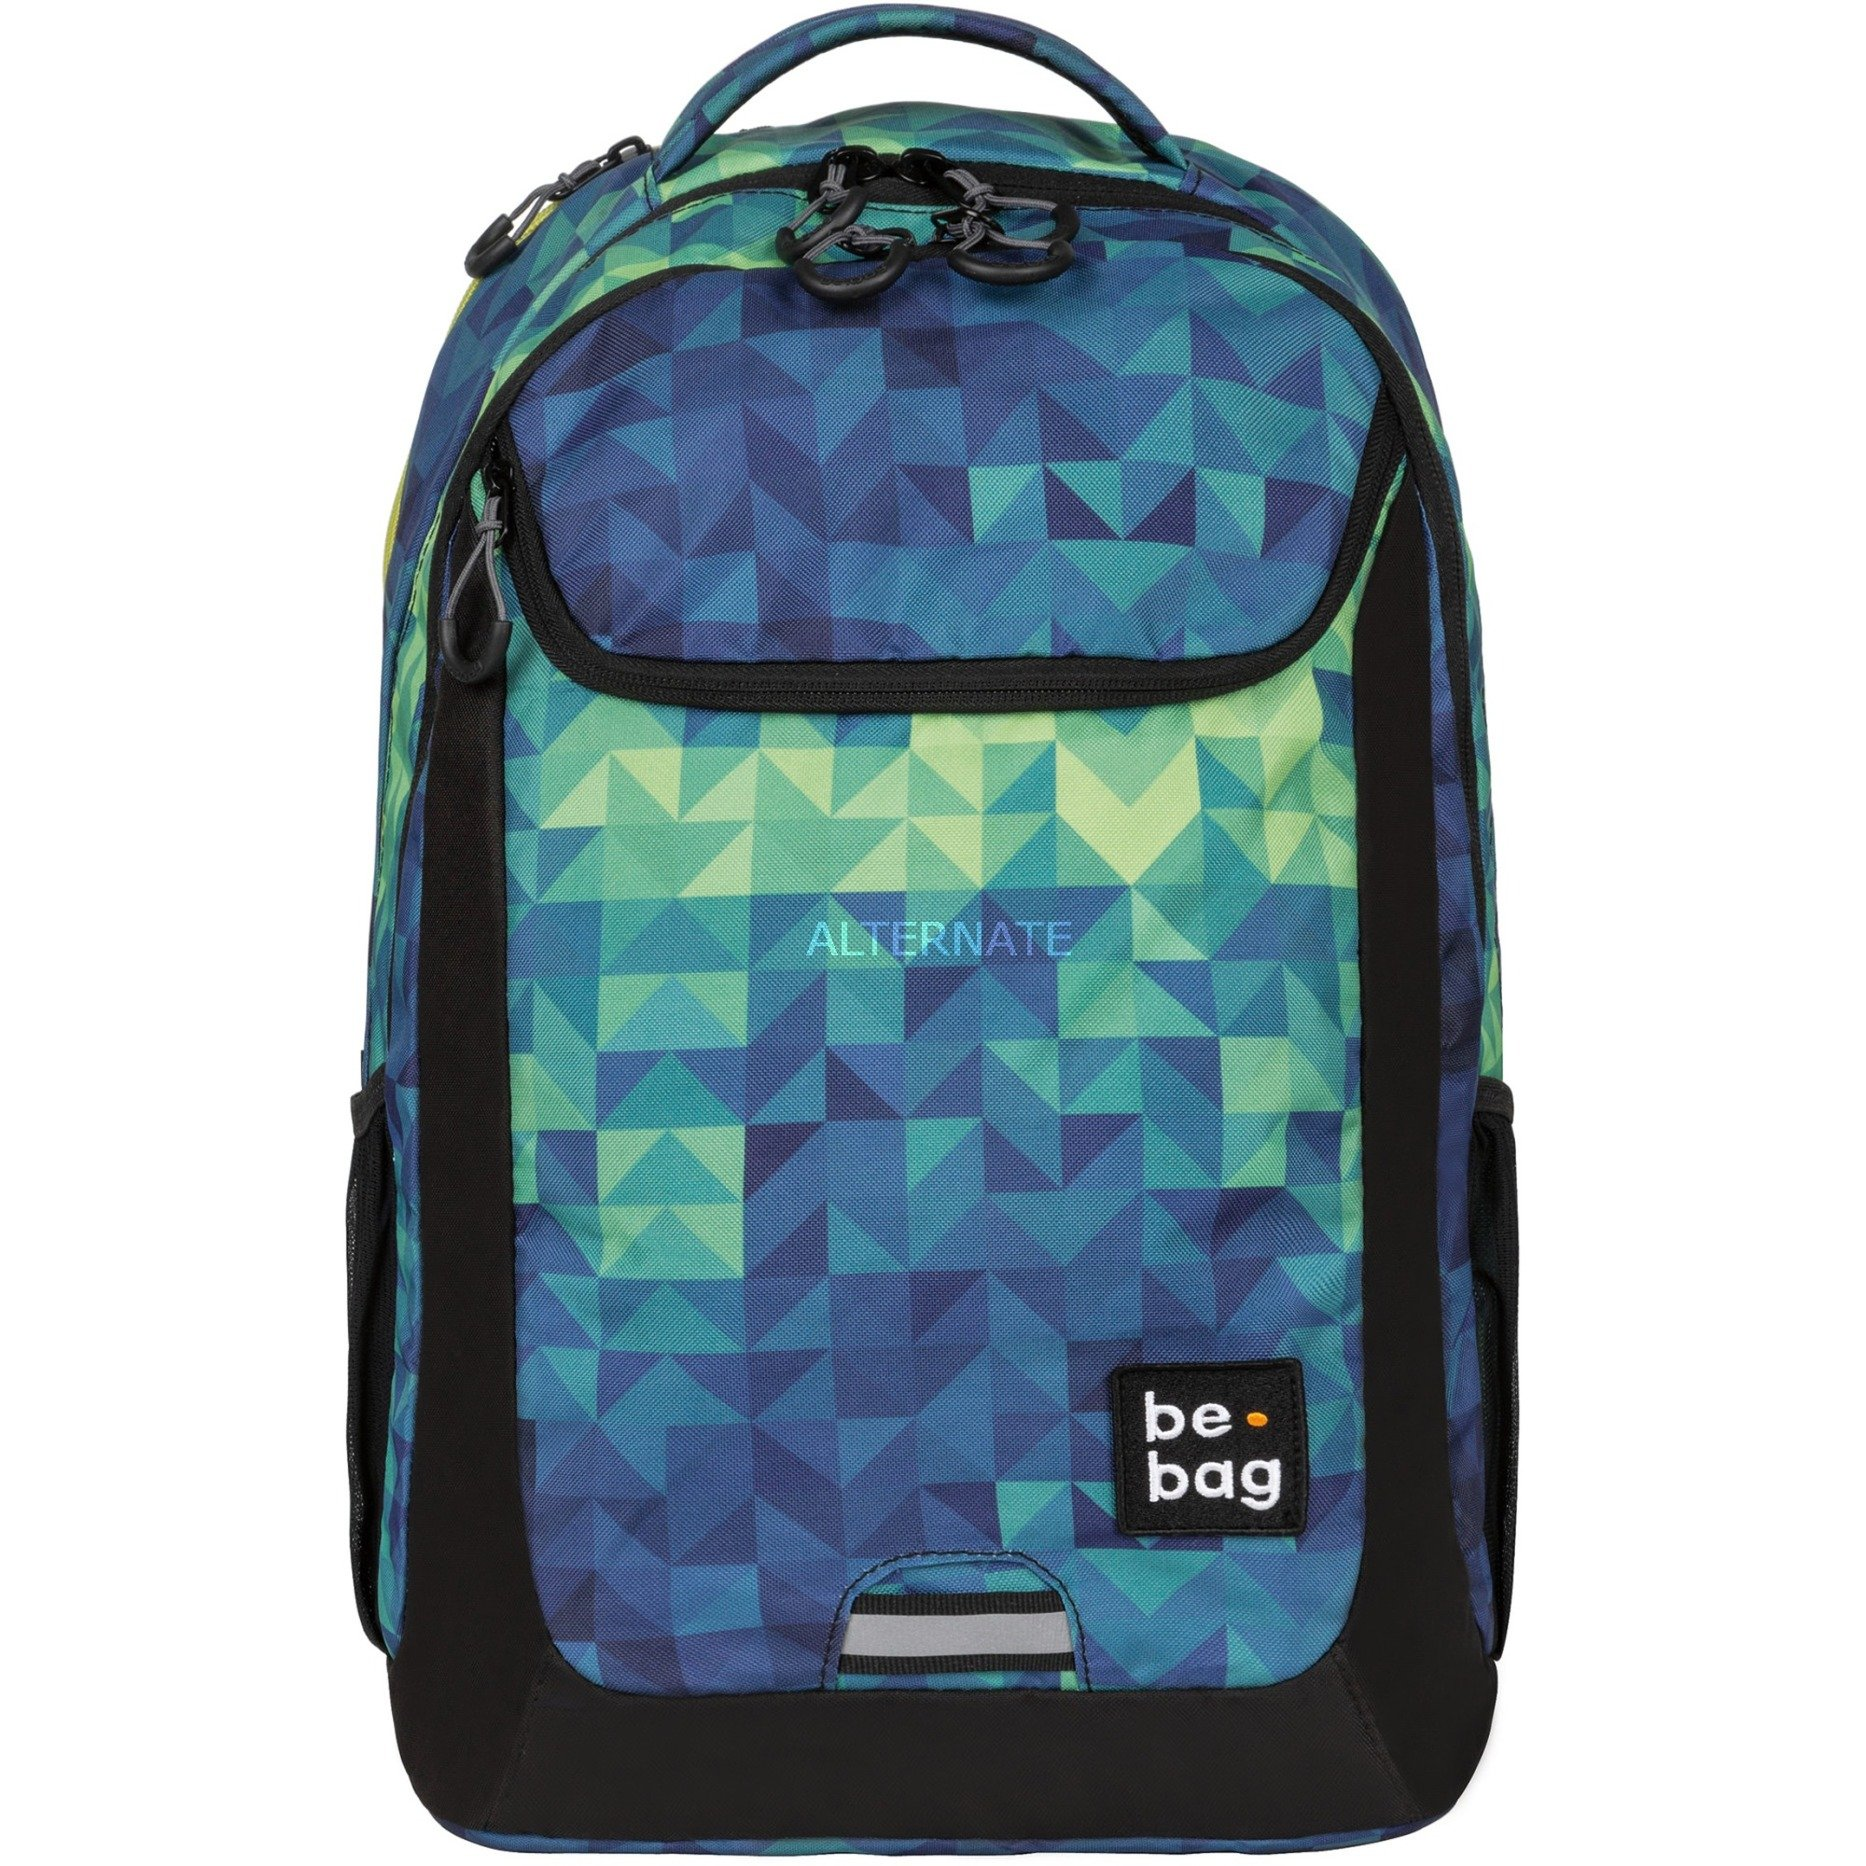 be.bag be.active Niño/niña School backpack Negro, Azul, Verde Poliéster, Mochila